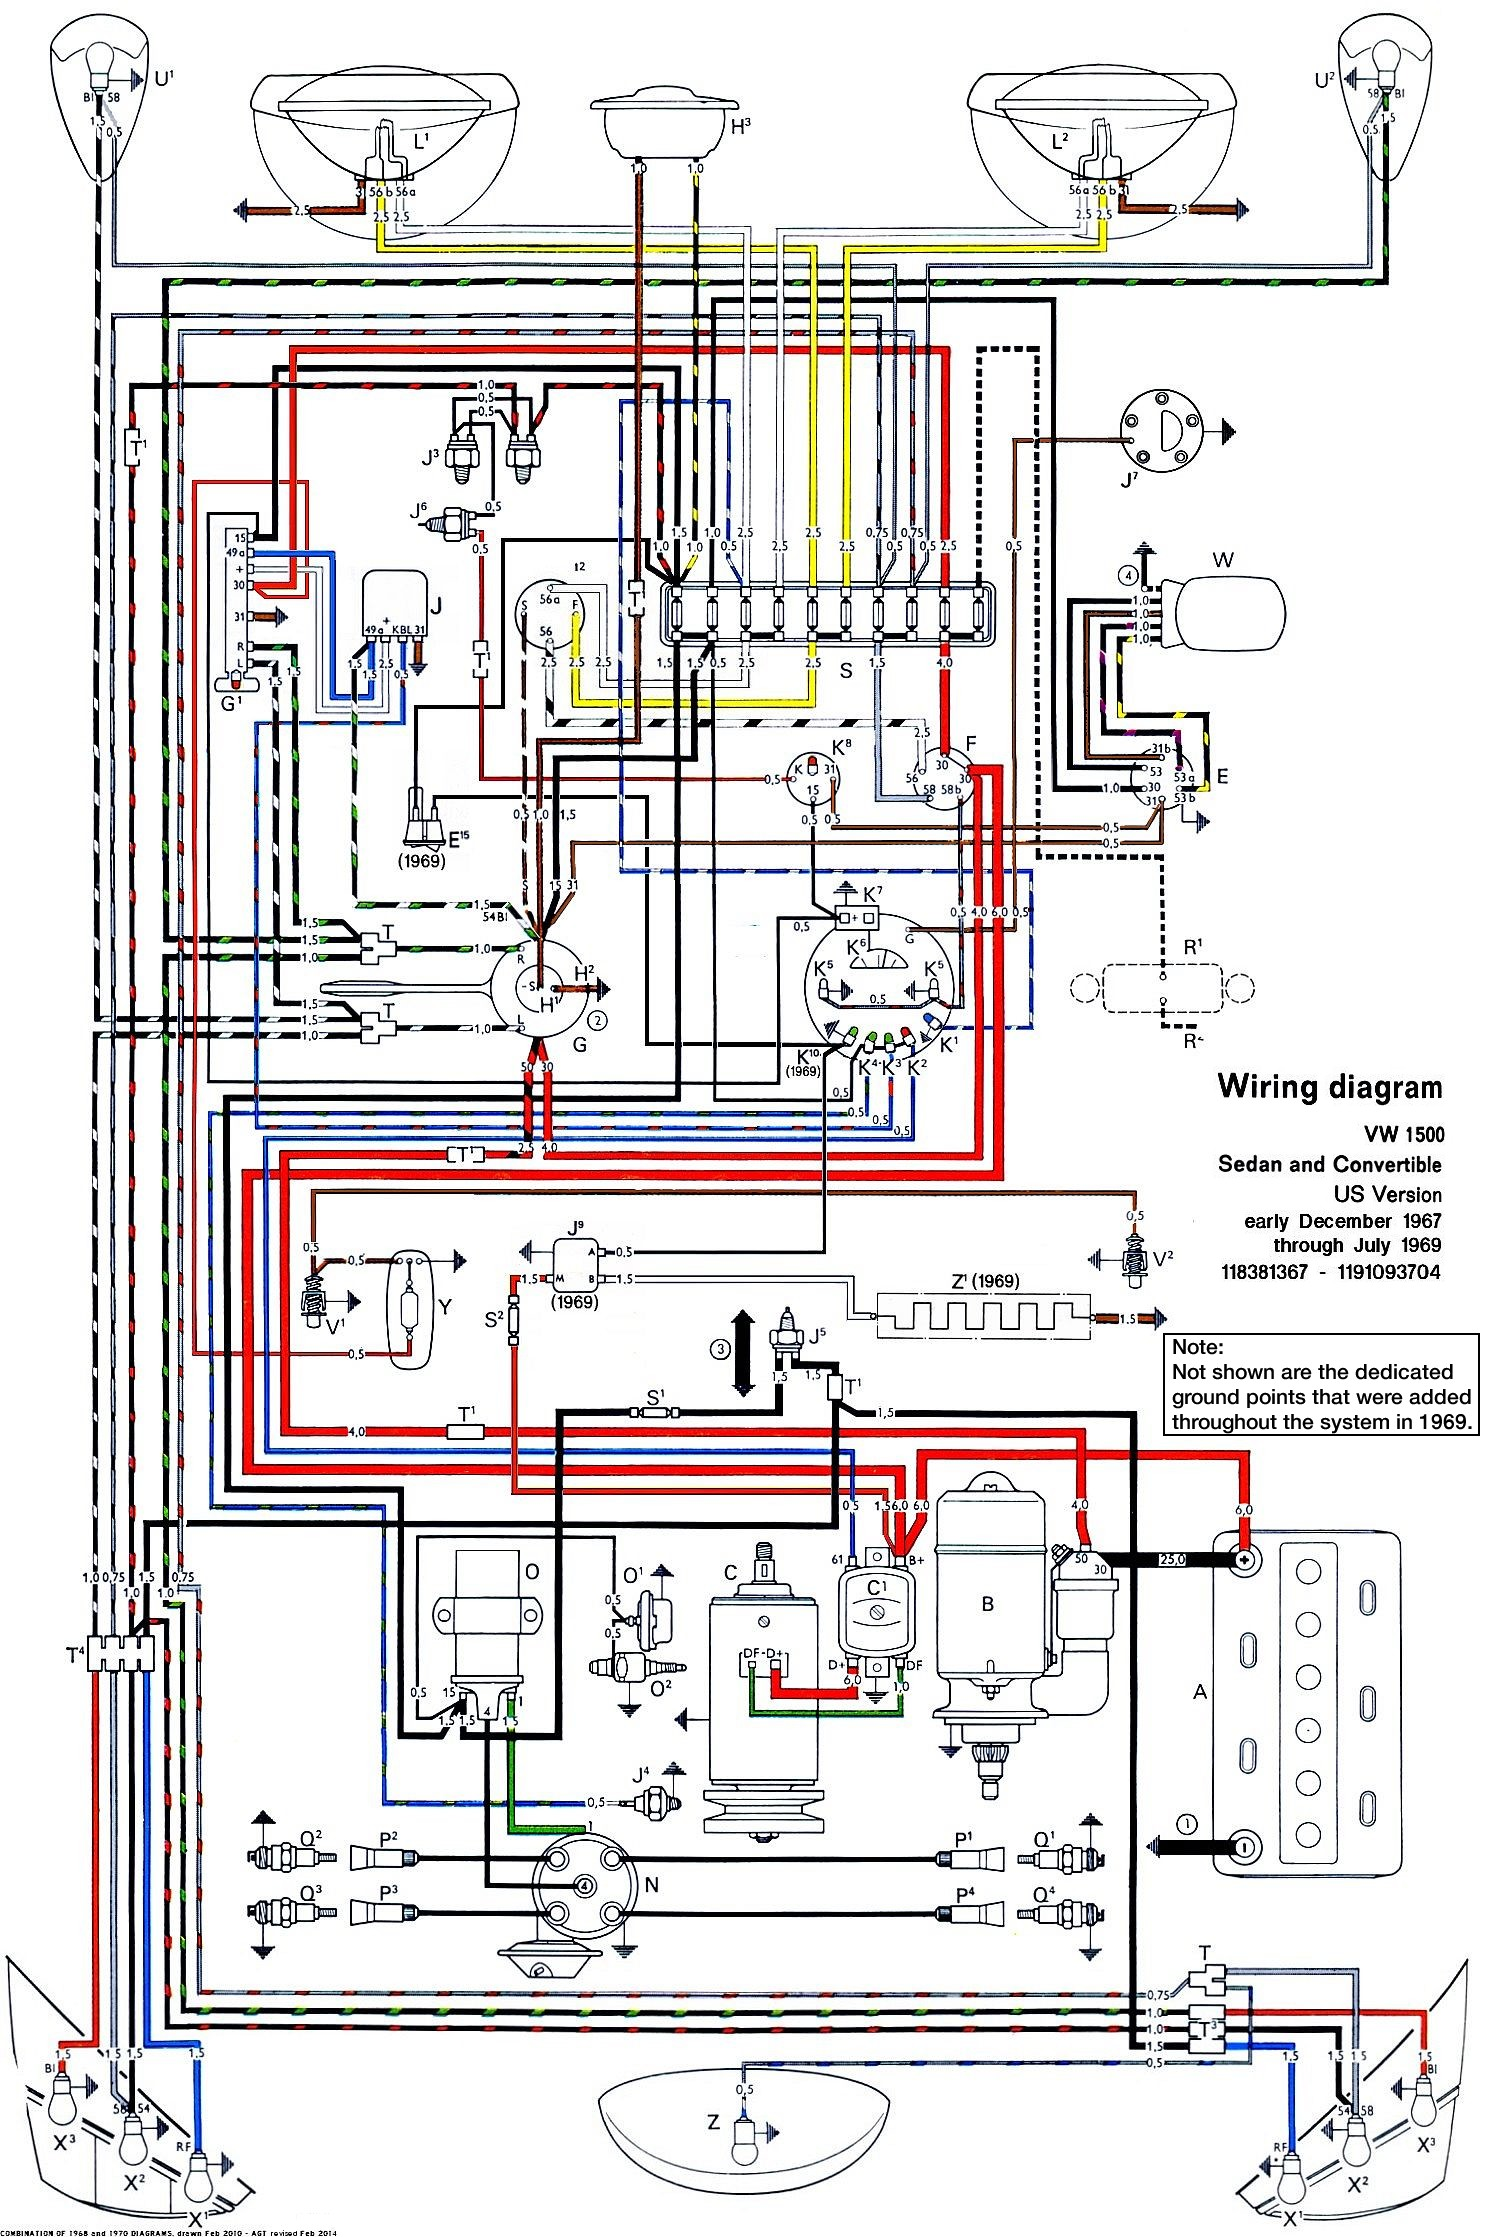 bug_68_69_usa 69 vw bug wiring diagram 1970 vw beetle wiring \u2022 wiring diagrams vw bug turn signal wiring diagram at eliteediting.co